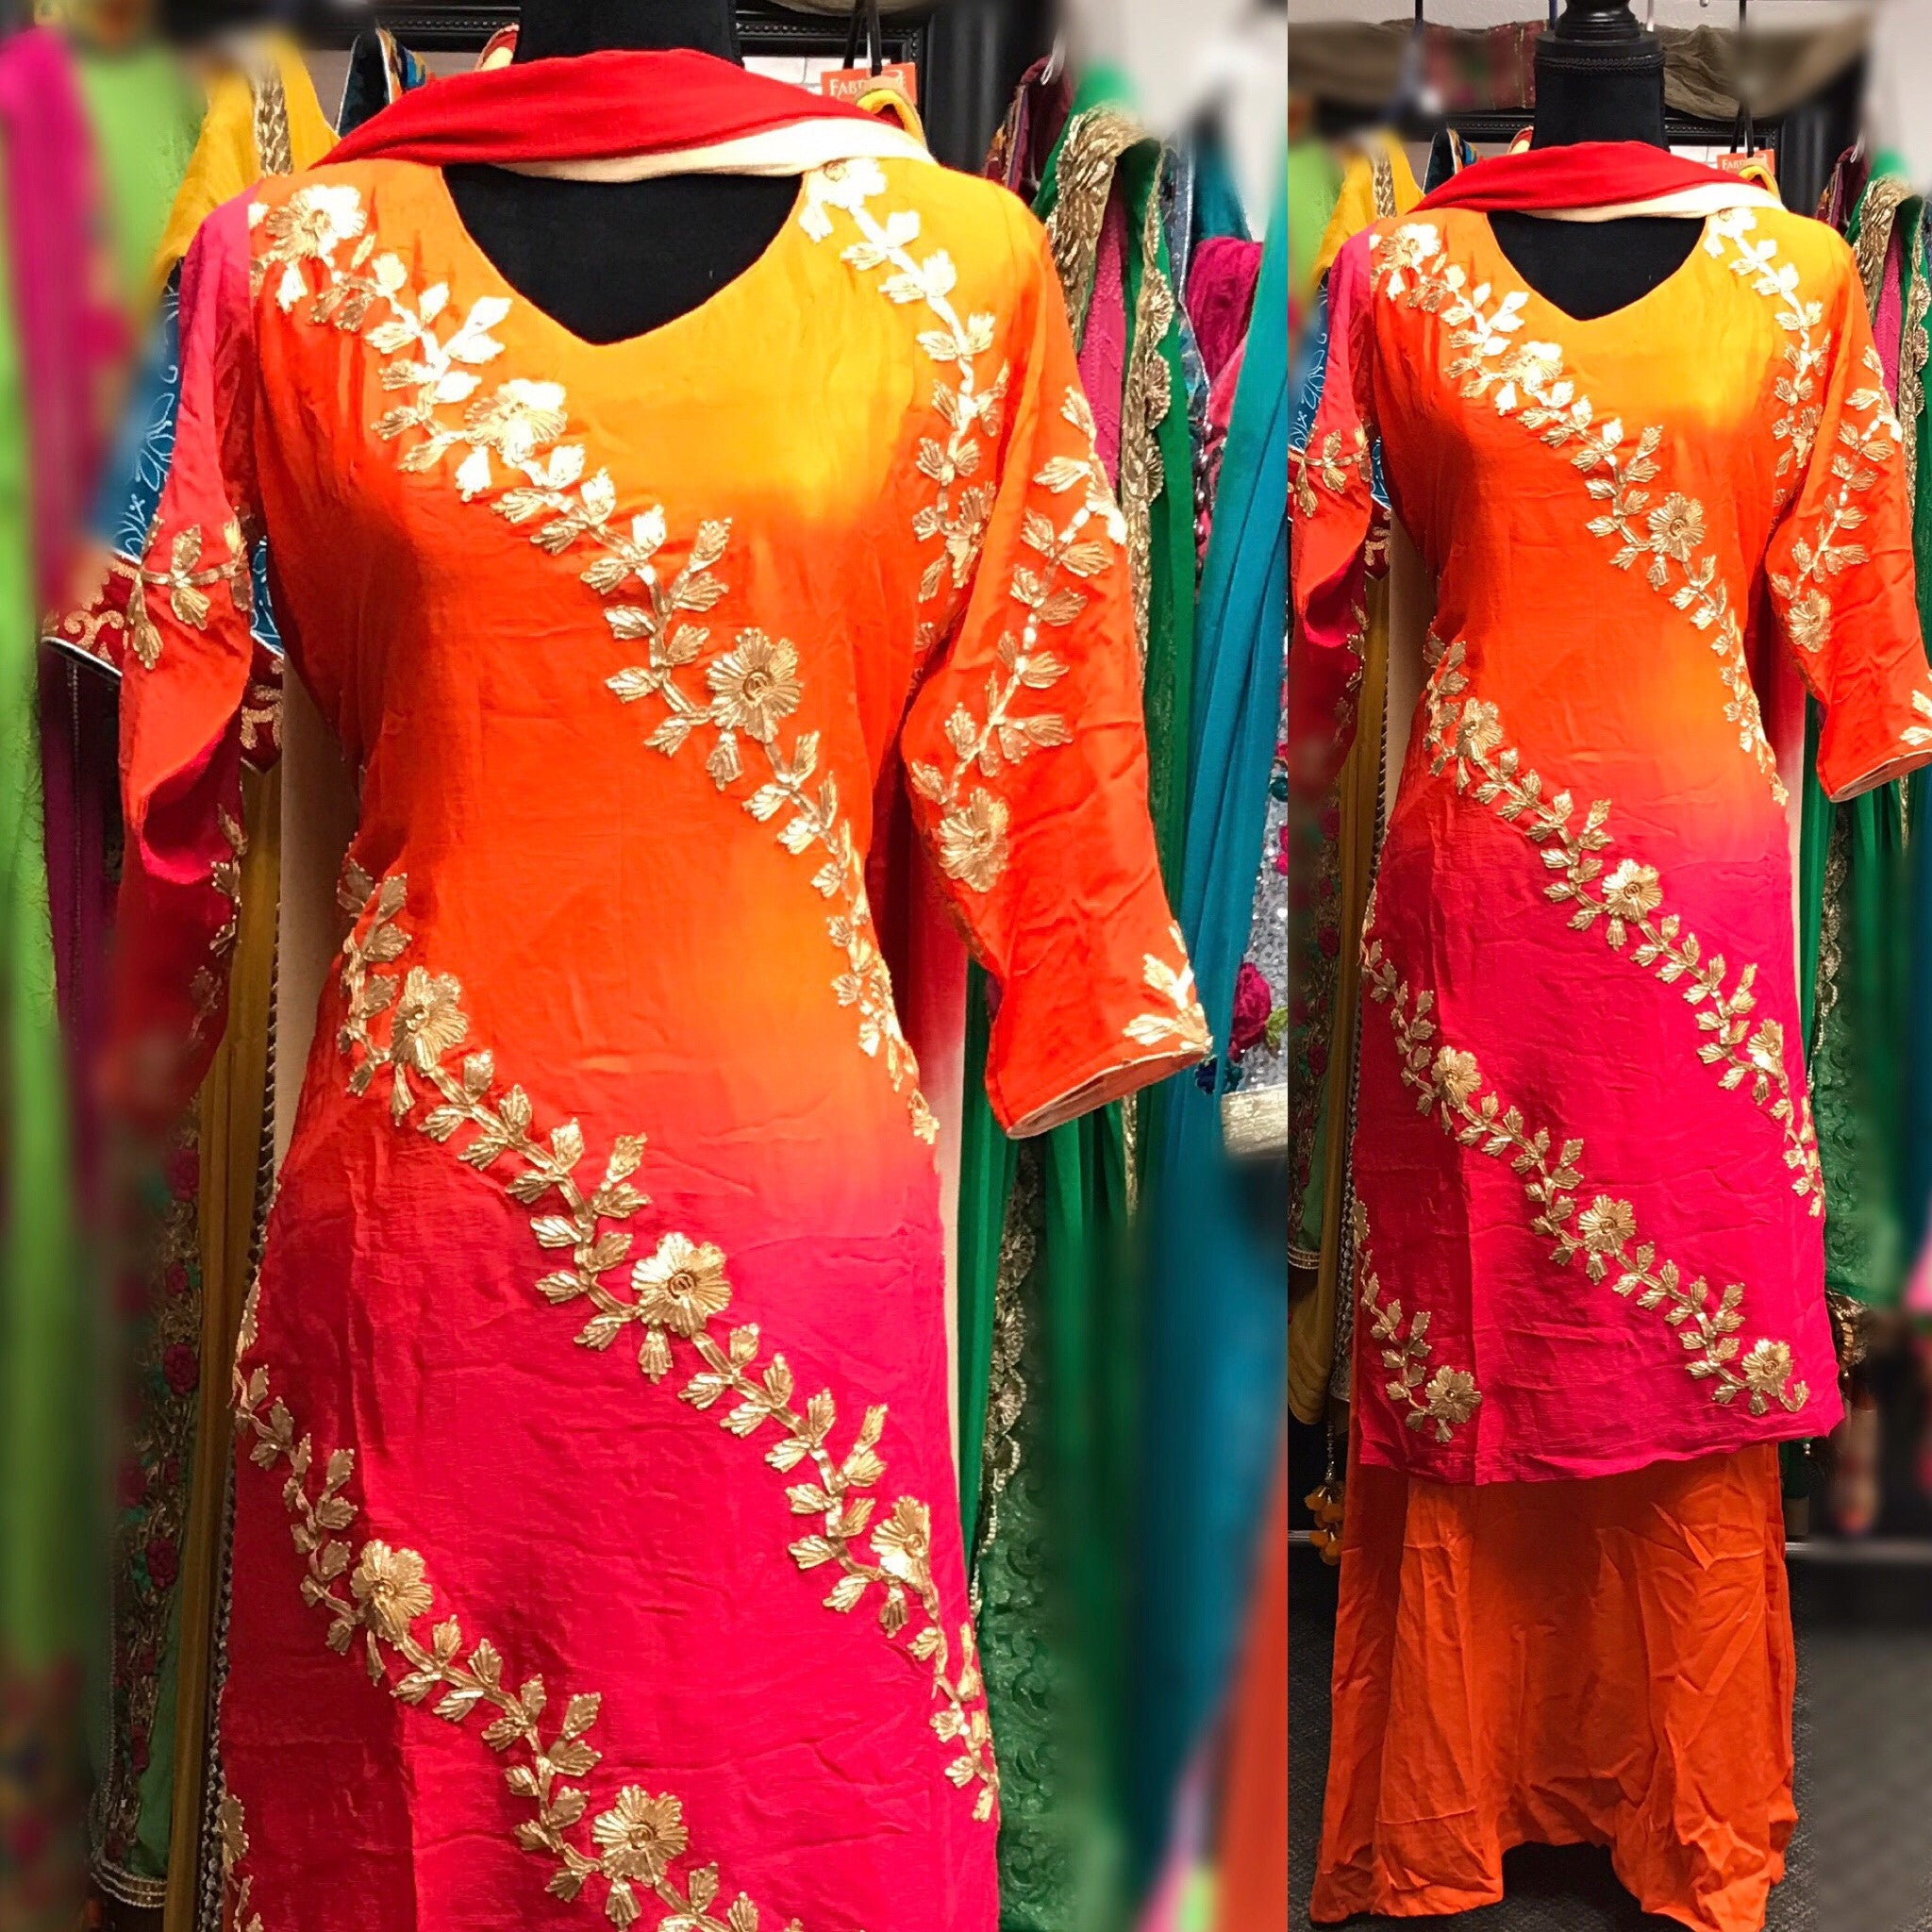 Long dress in pink and orange # fdn0202